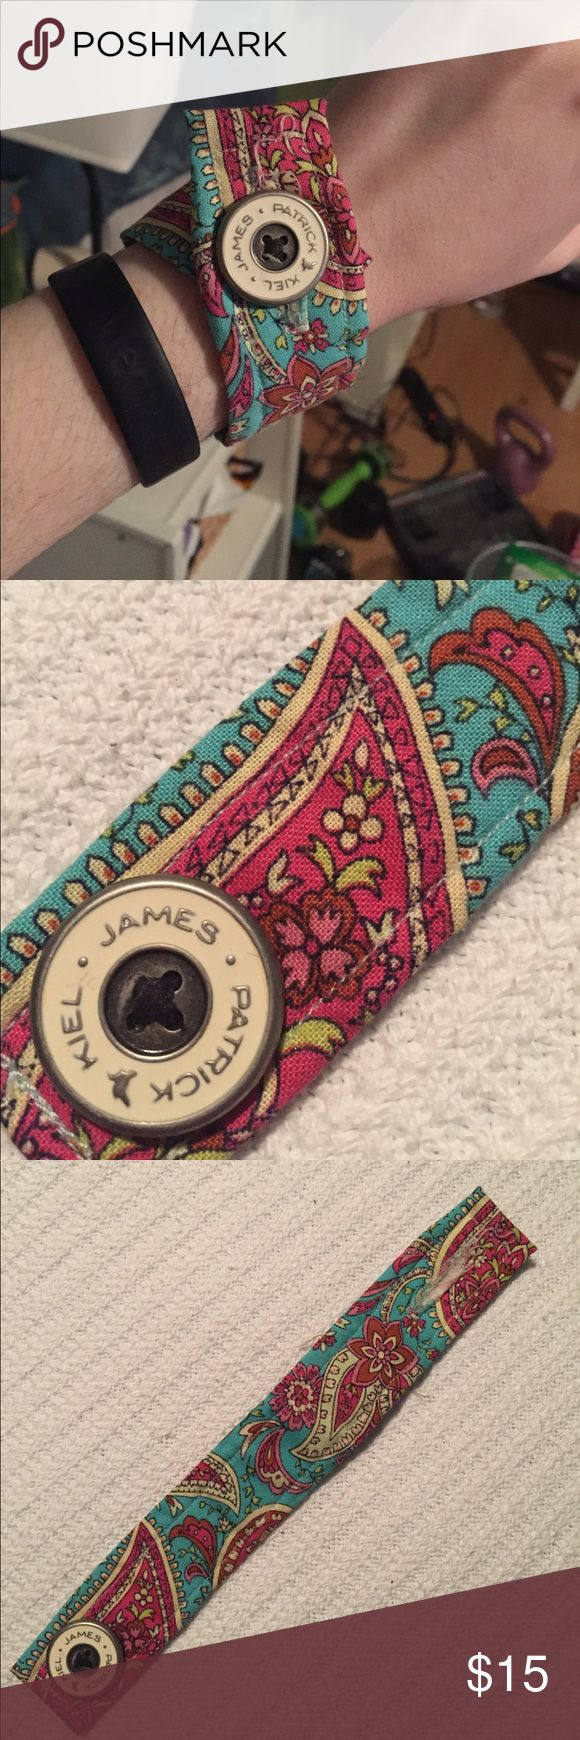 Kiel James Patrick fabric bracelet blue and pink Bright statement bracelet fits a small adult wrist.  Buttons.......PRICES FIRM              BUNDLE DISCOUNT 15%                            LONG TERM VACATION                HOLD STARTING 5/12                          BUY NOW Jewelry Bracelets